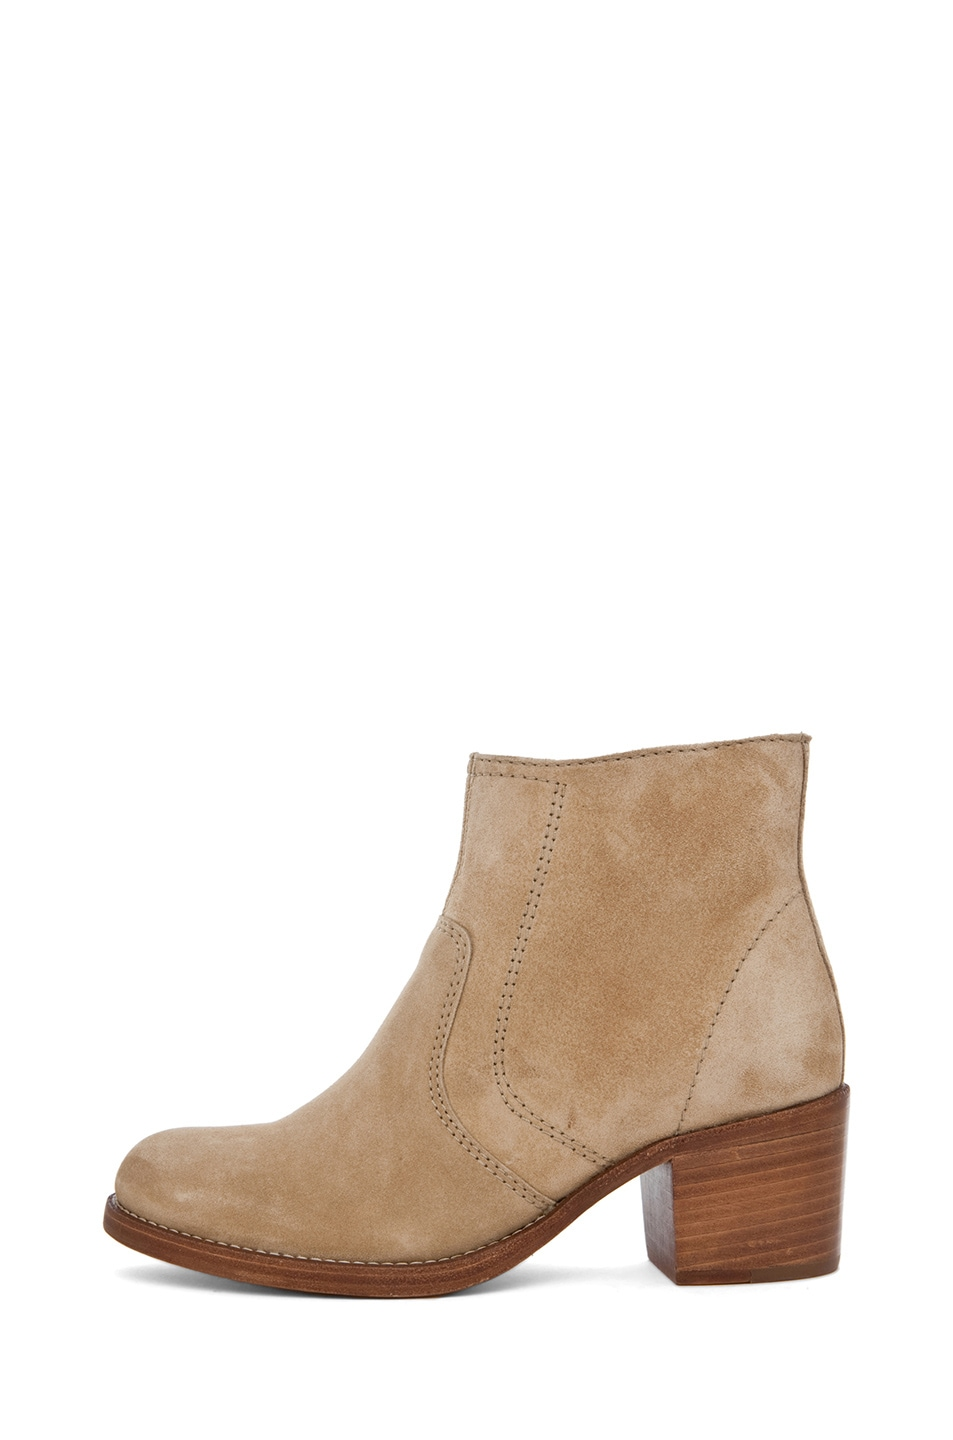 Image 1 of A.P.C. Camarguaise Bootie in Beige